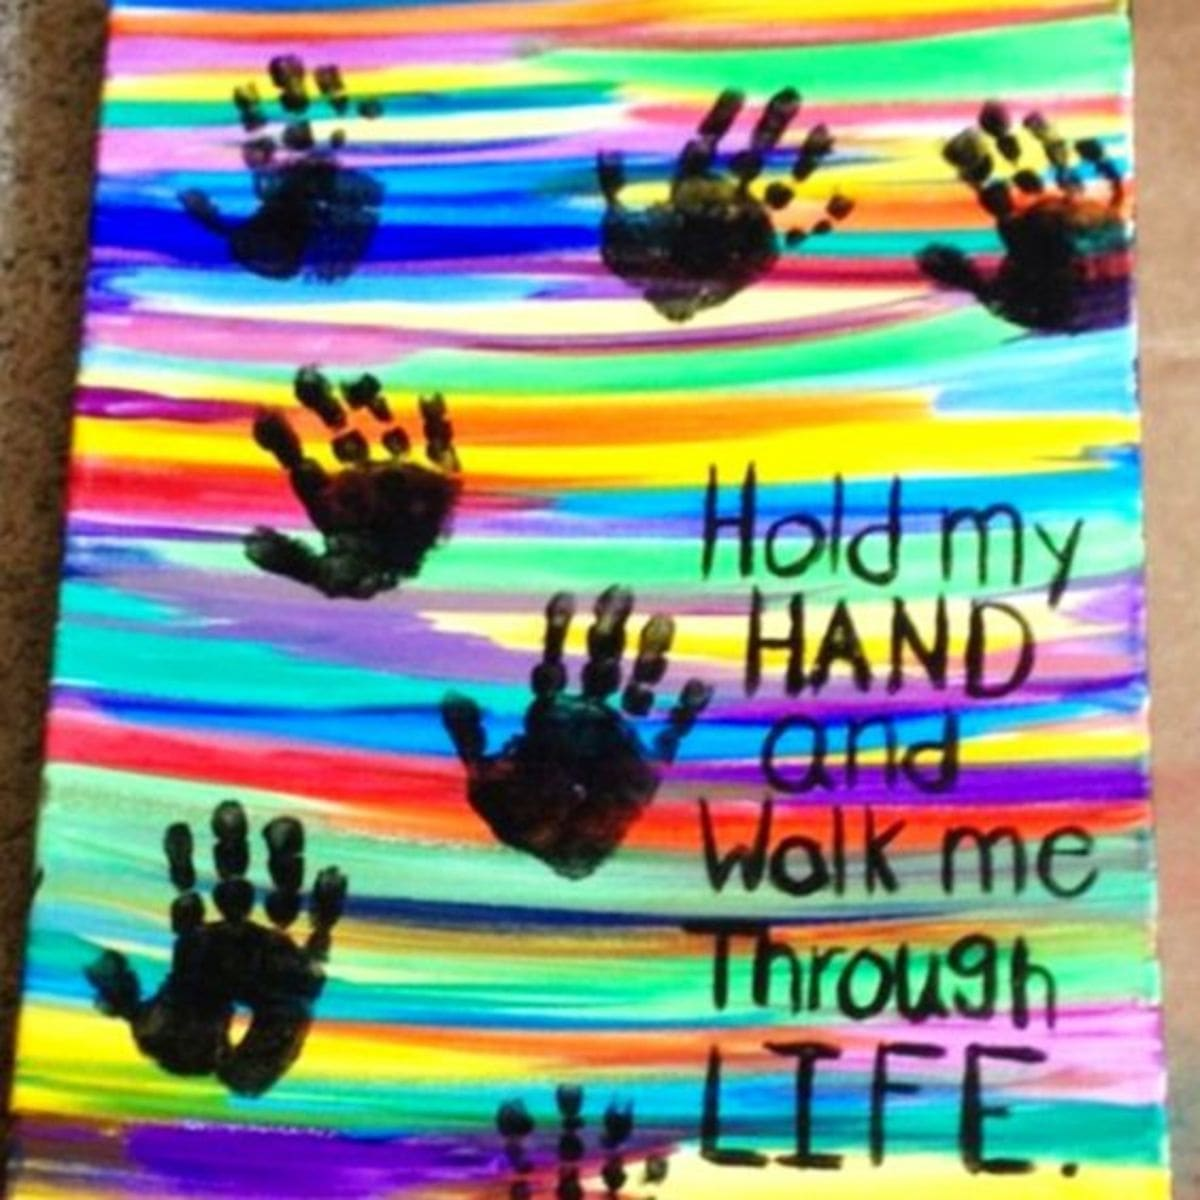 old my hand gift for dad or mom